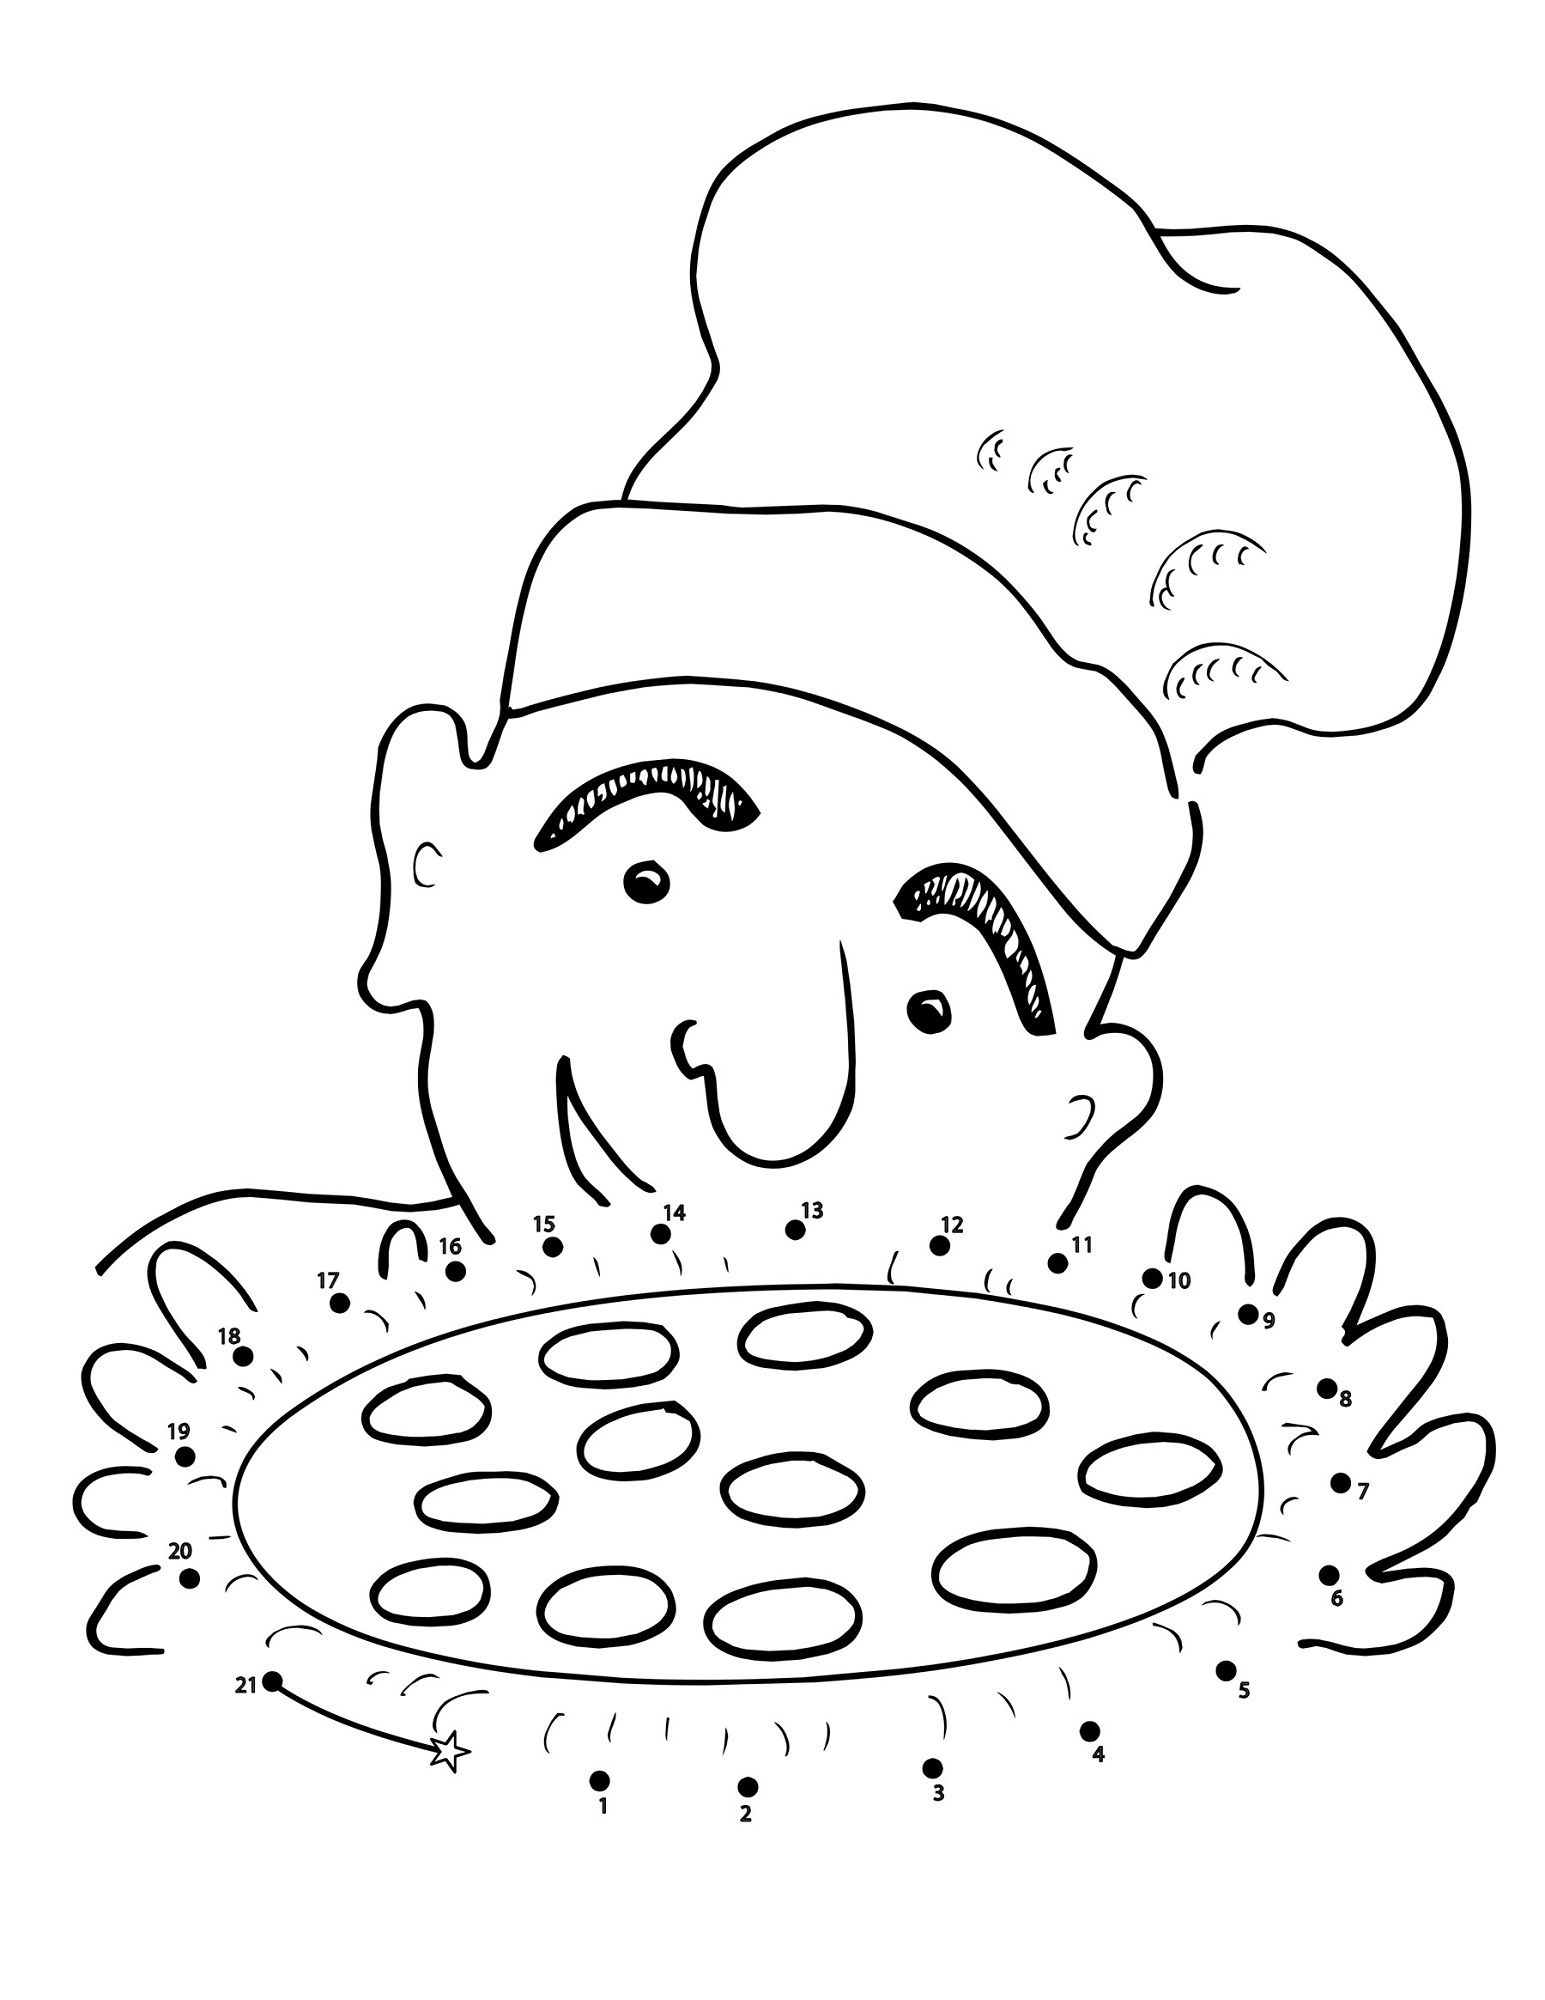 Pizza Maze For Kids Mazes For Kids Easter Coloring Pages Dot Worksheets [ 2000 x 1545 Pixel ]